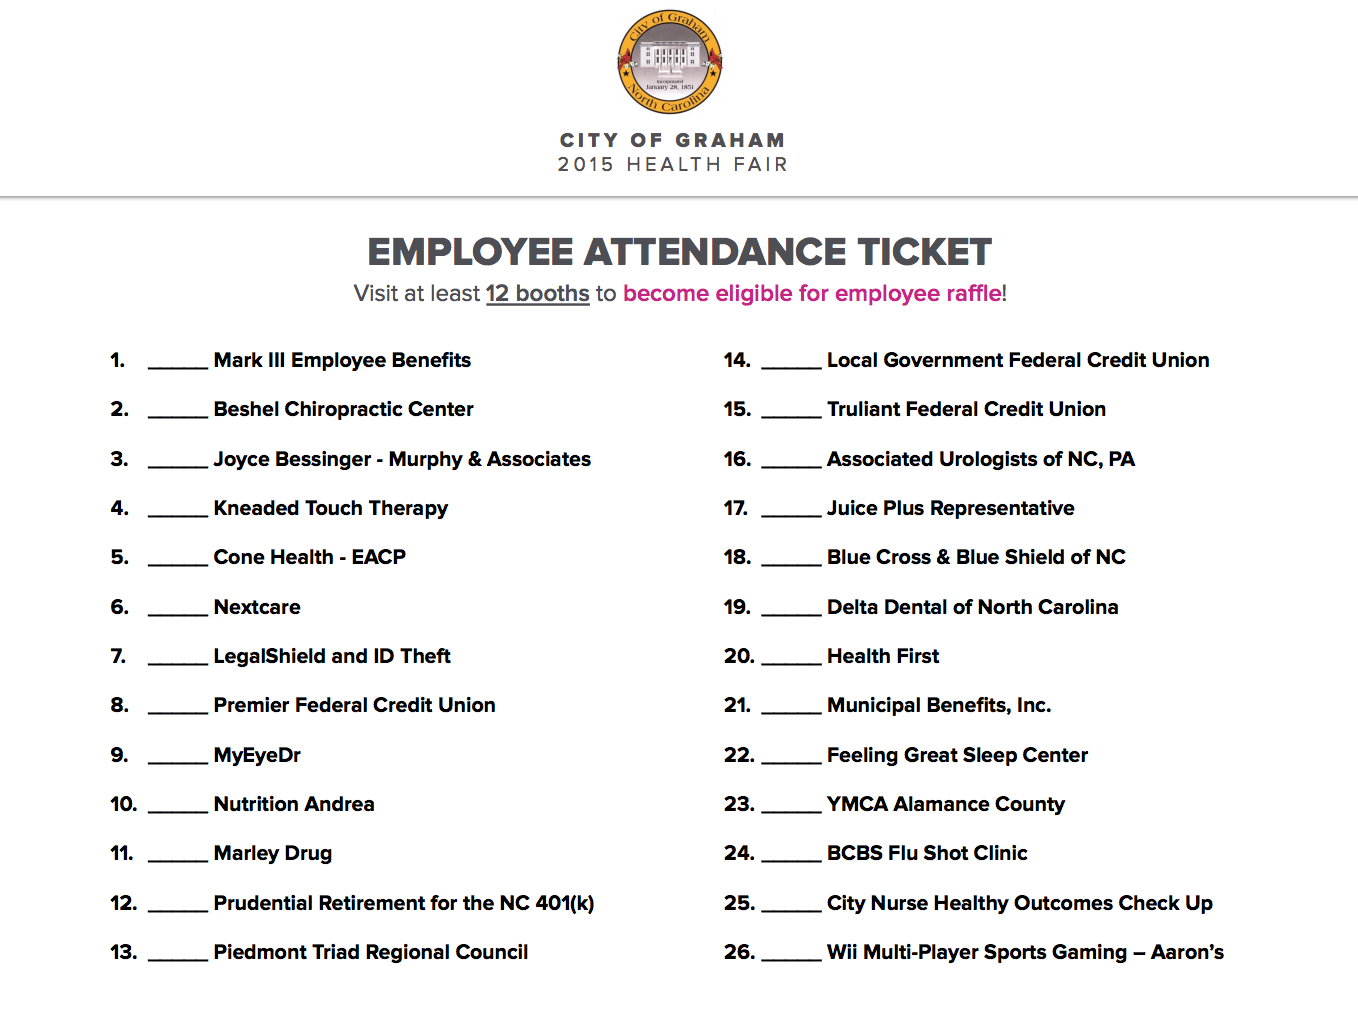 health-fair-employee-attendance-ticket-by-hfc